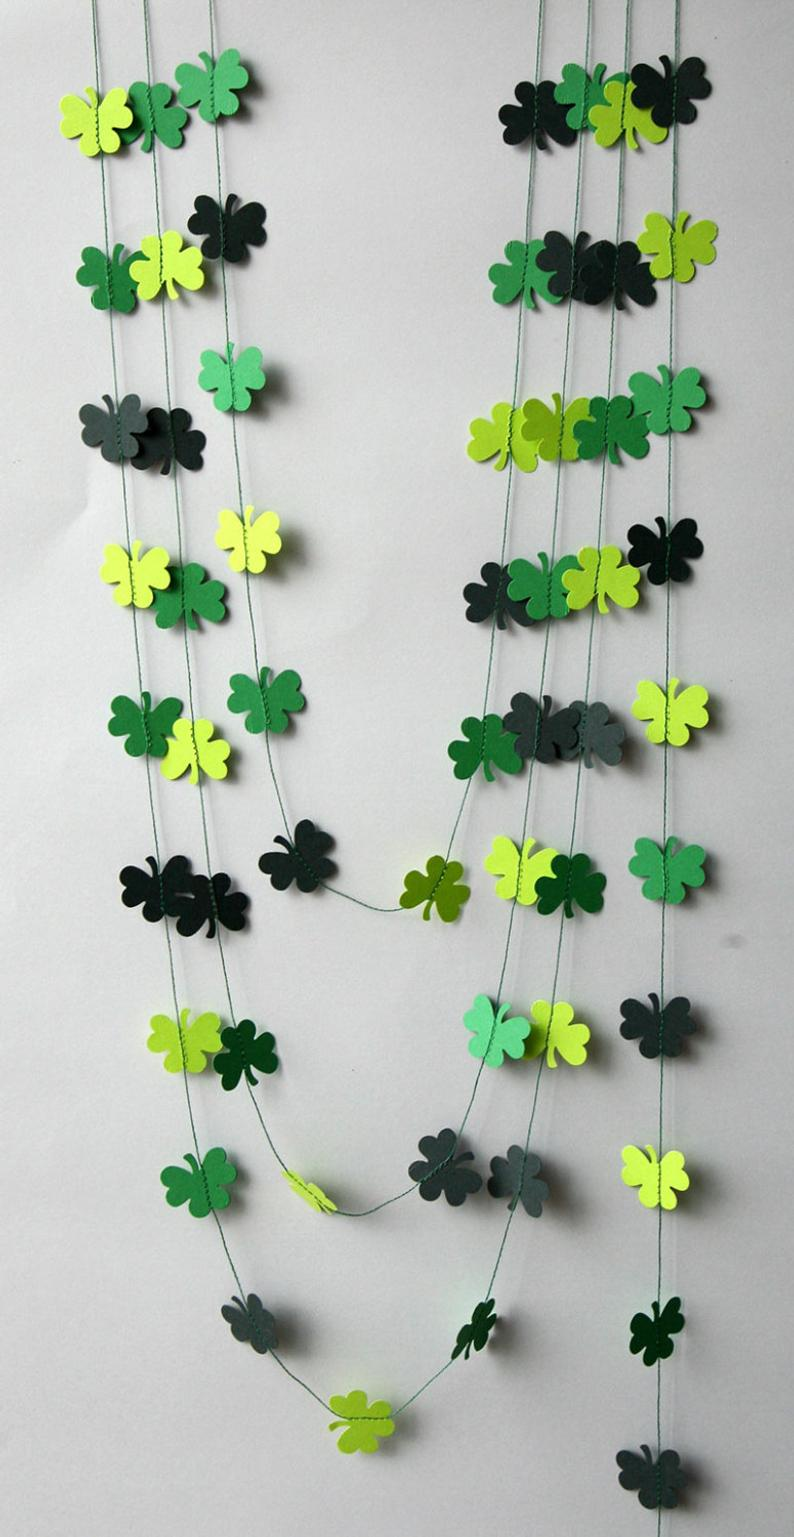 St. Patrick & # 39; s Day wreath, clover wreath